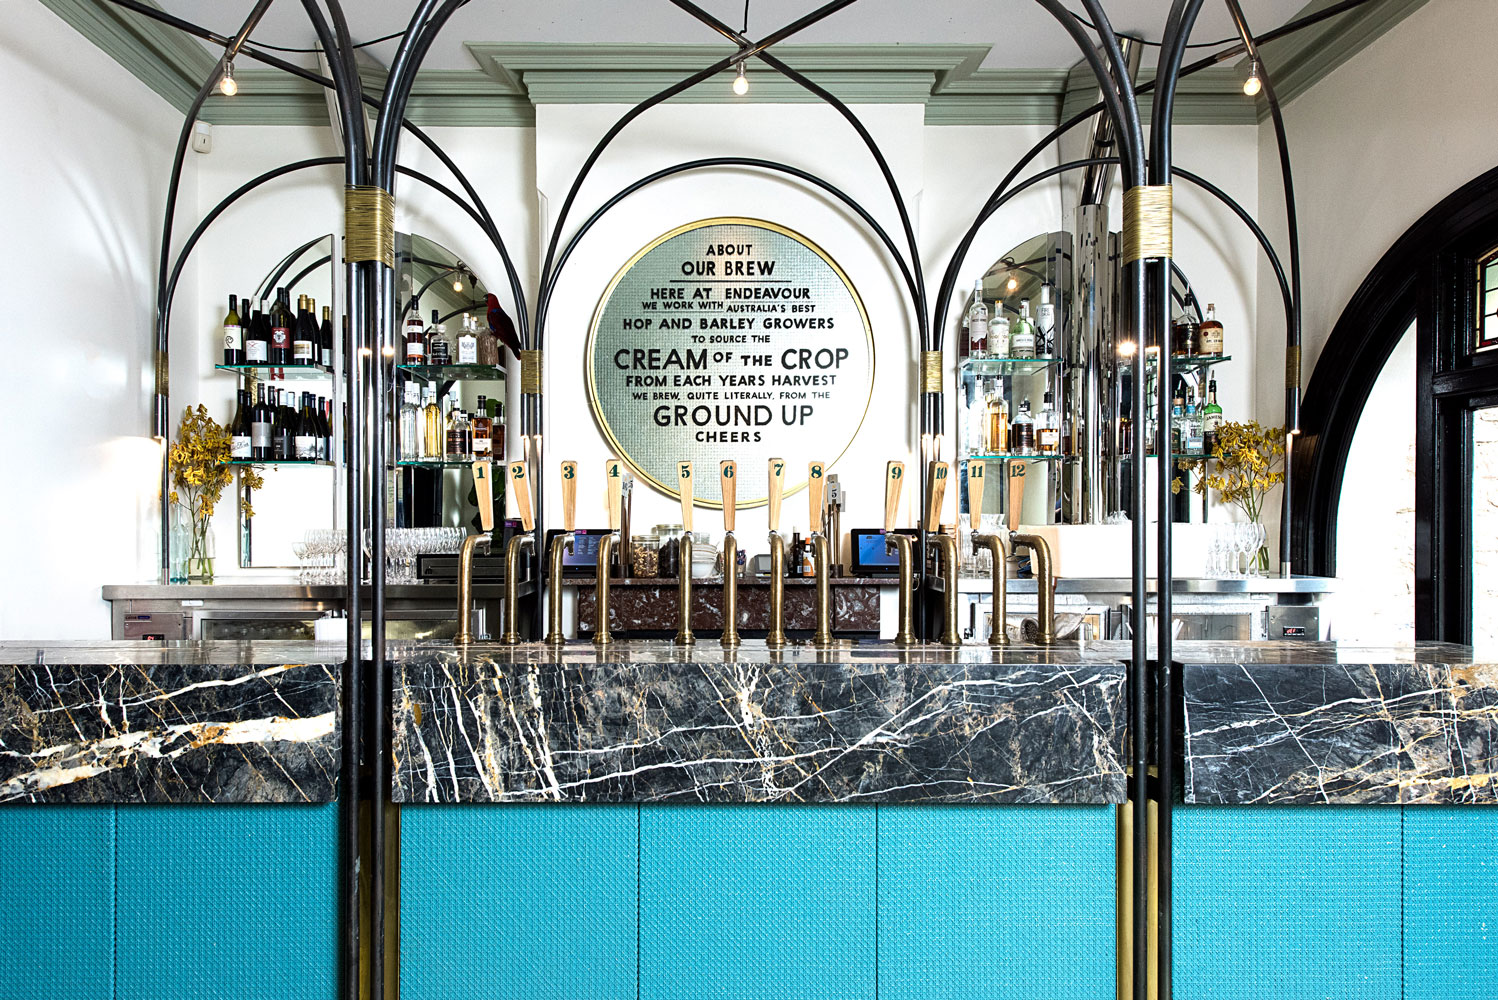 Image result for endeavour tap rooms